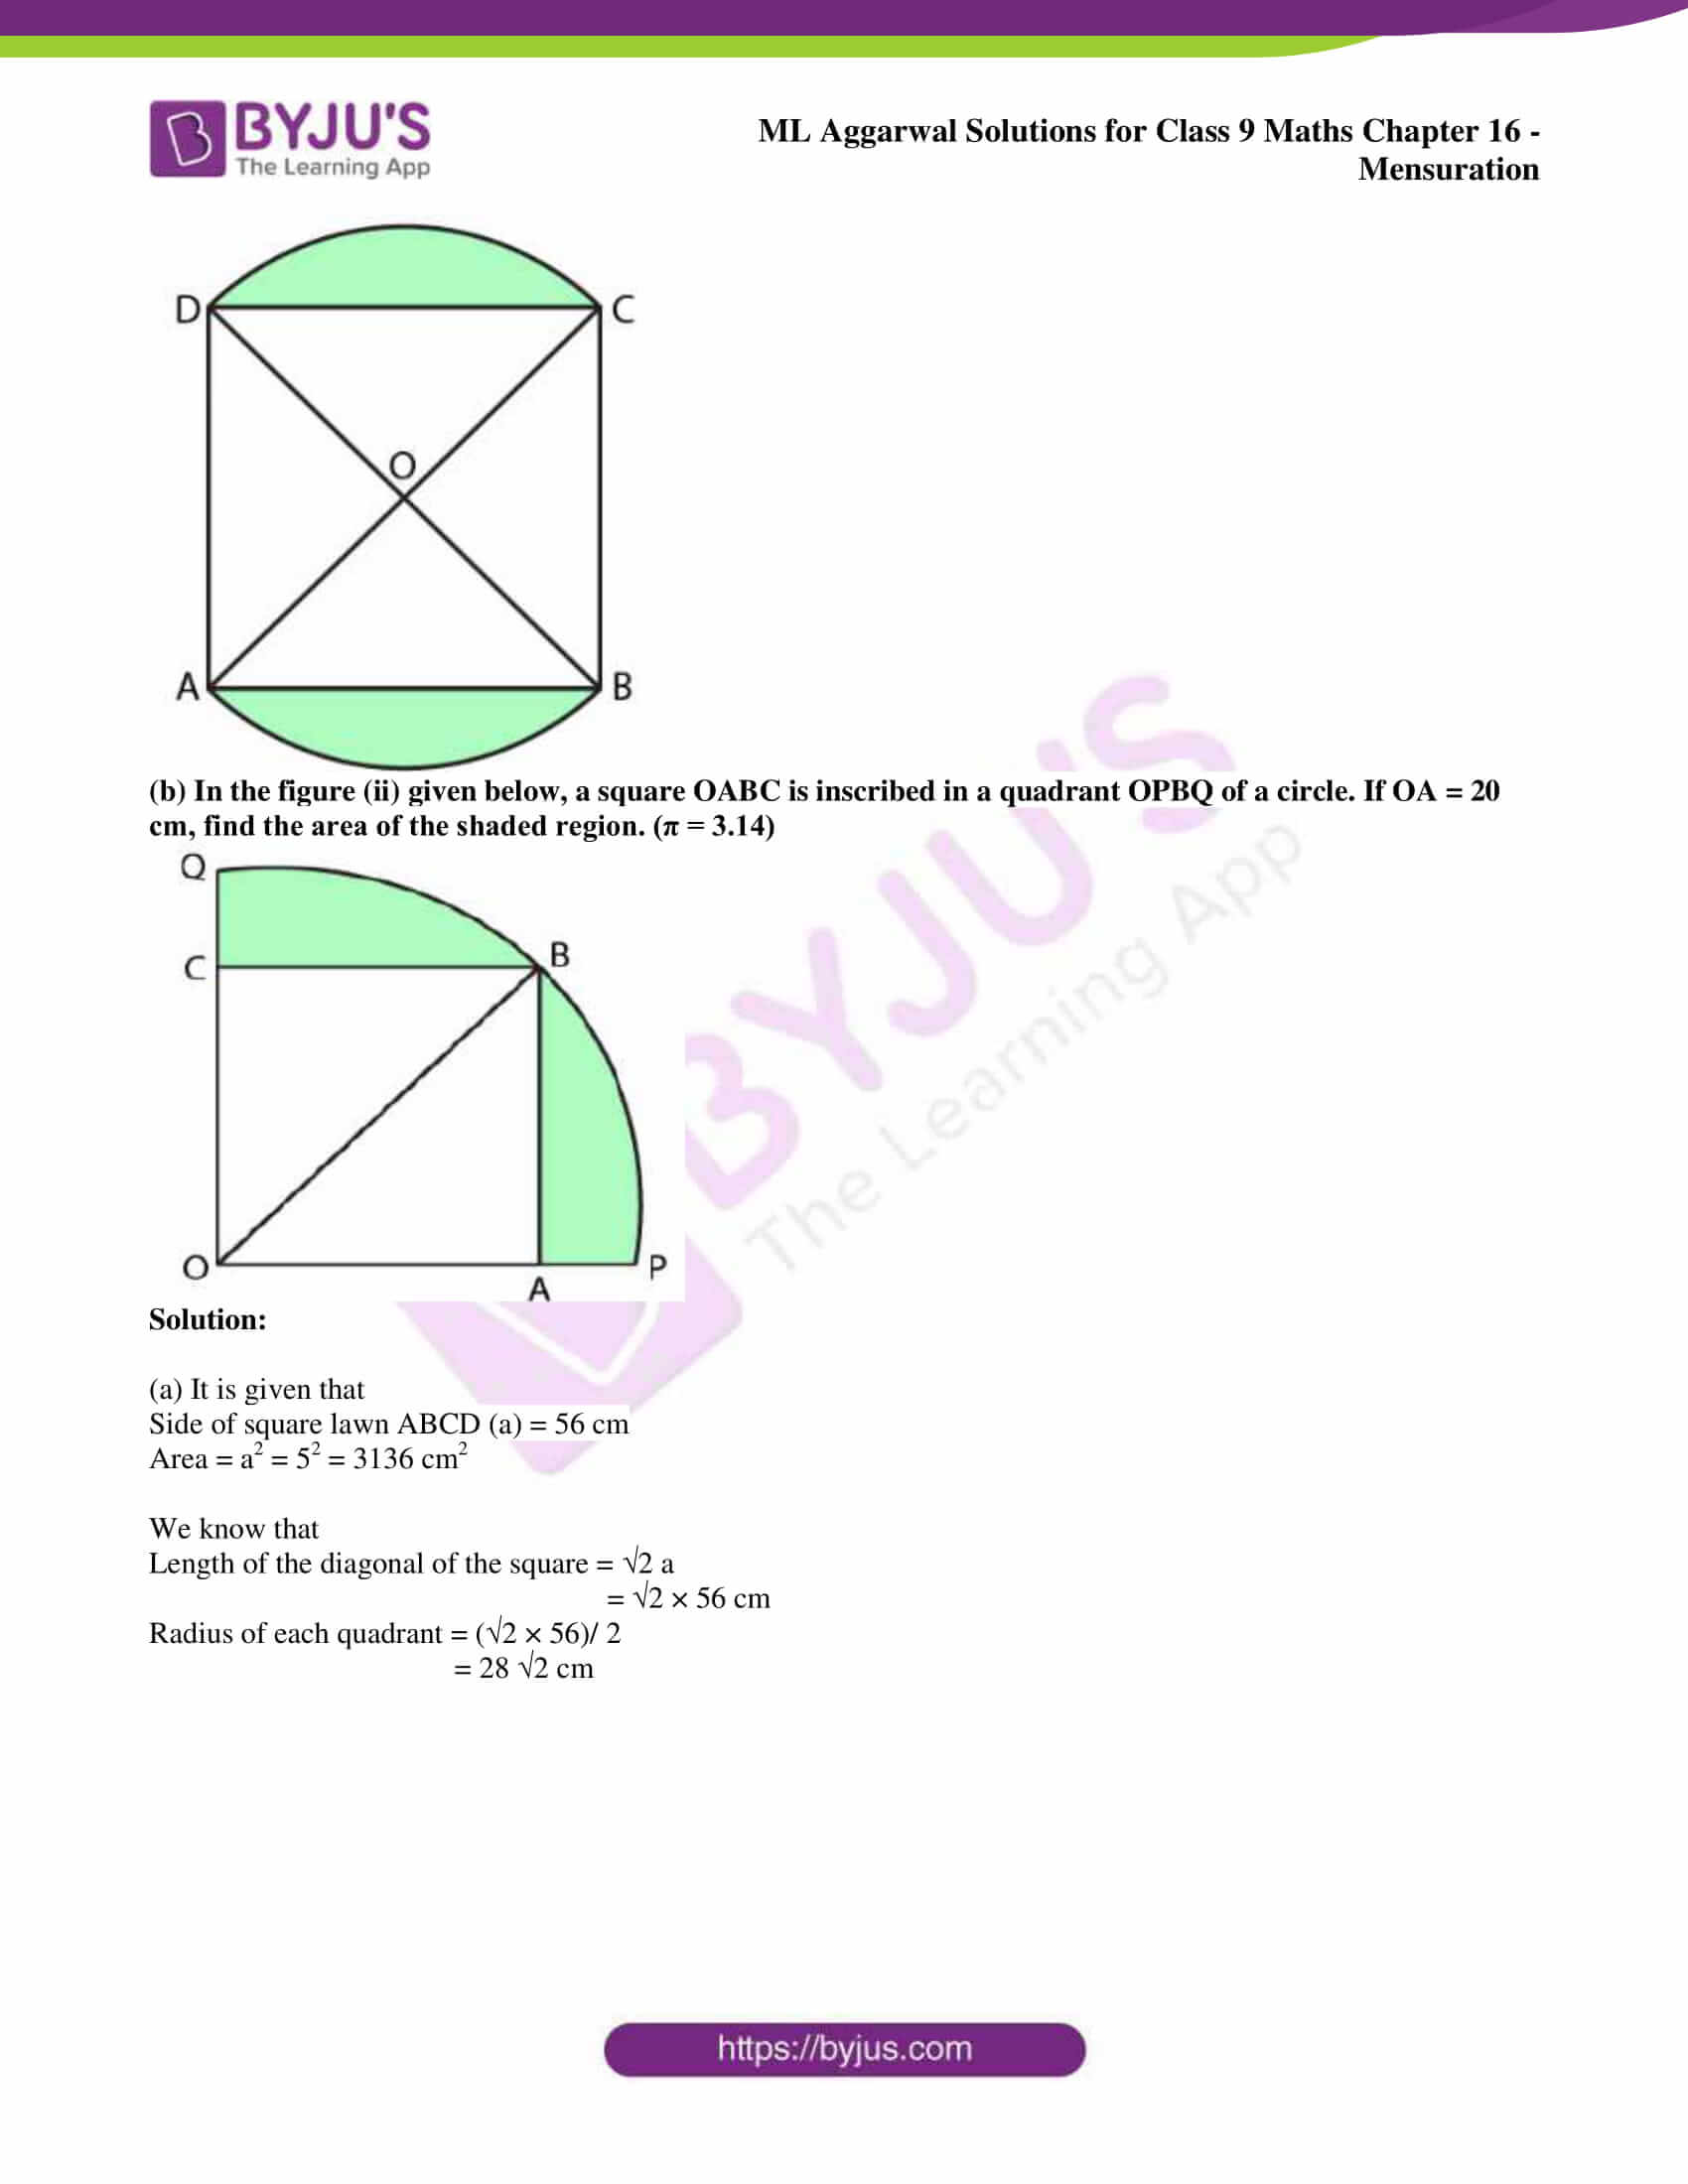 ml aggarwal solutions for class 9 maths chapter 16 099